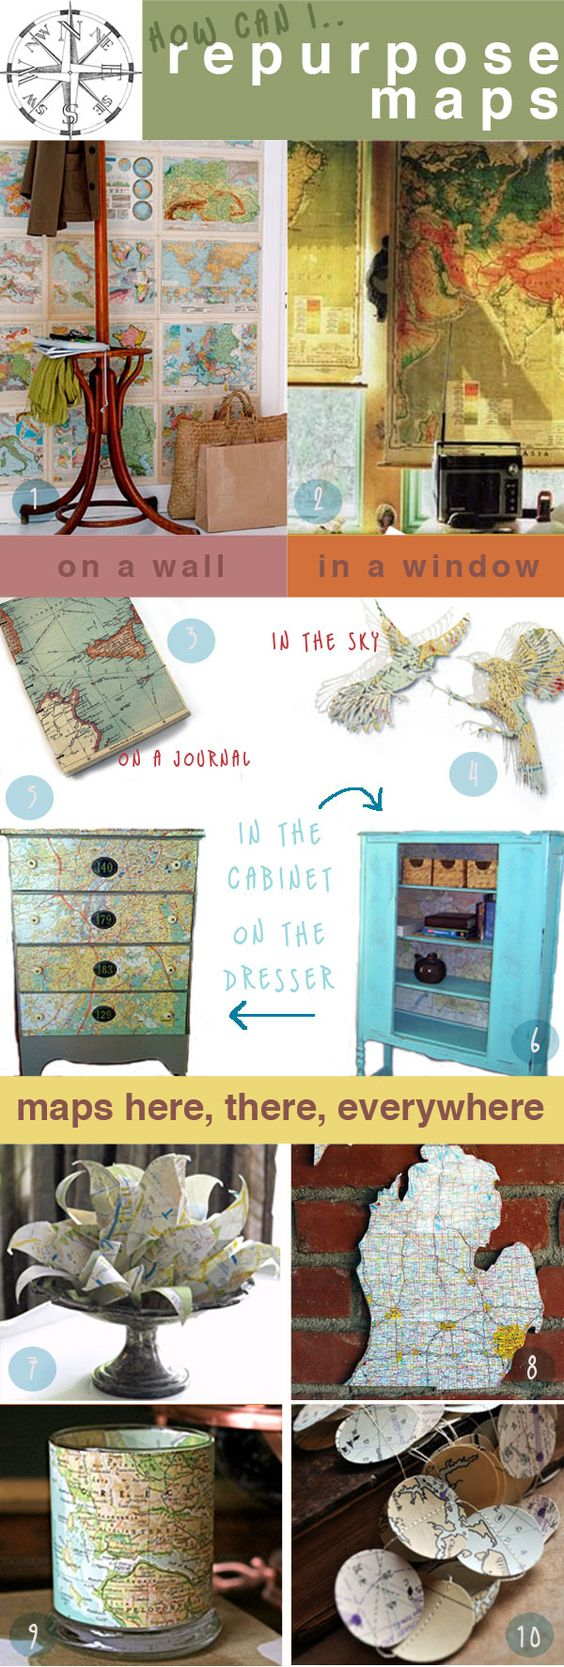 Repurposing (more) Map ideas~ great stuff!